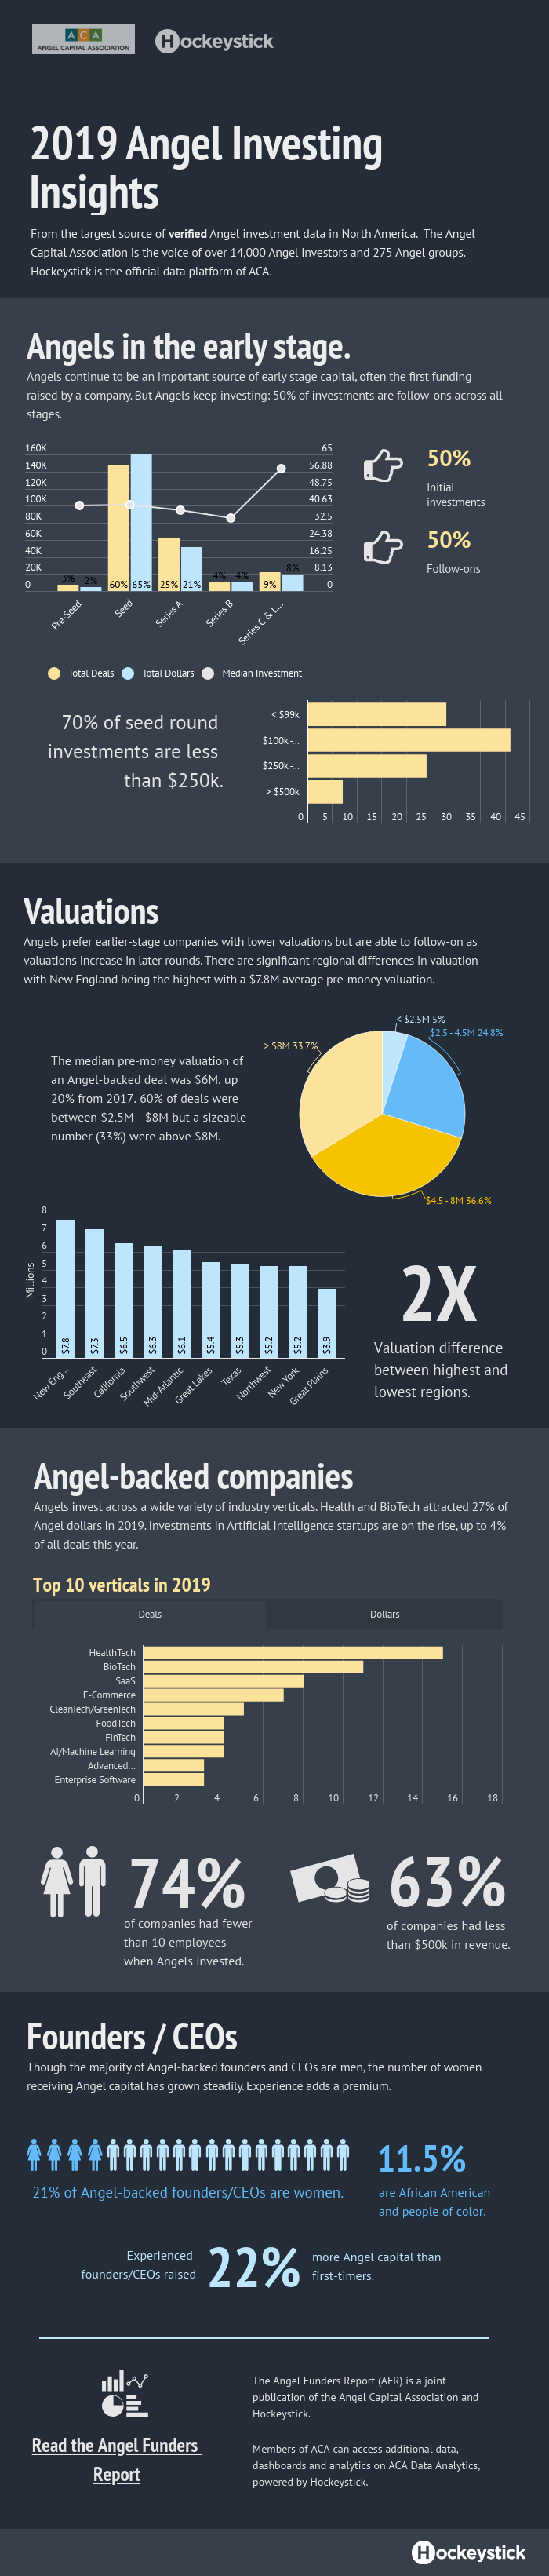 Angel Investing 2019 Infographic